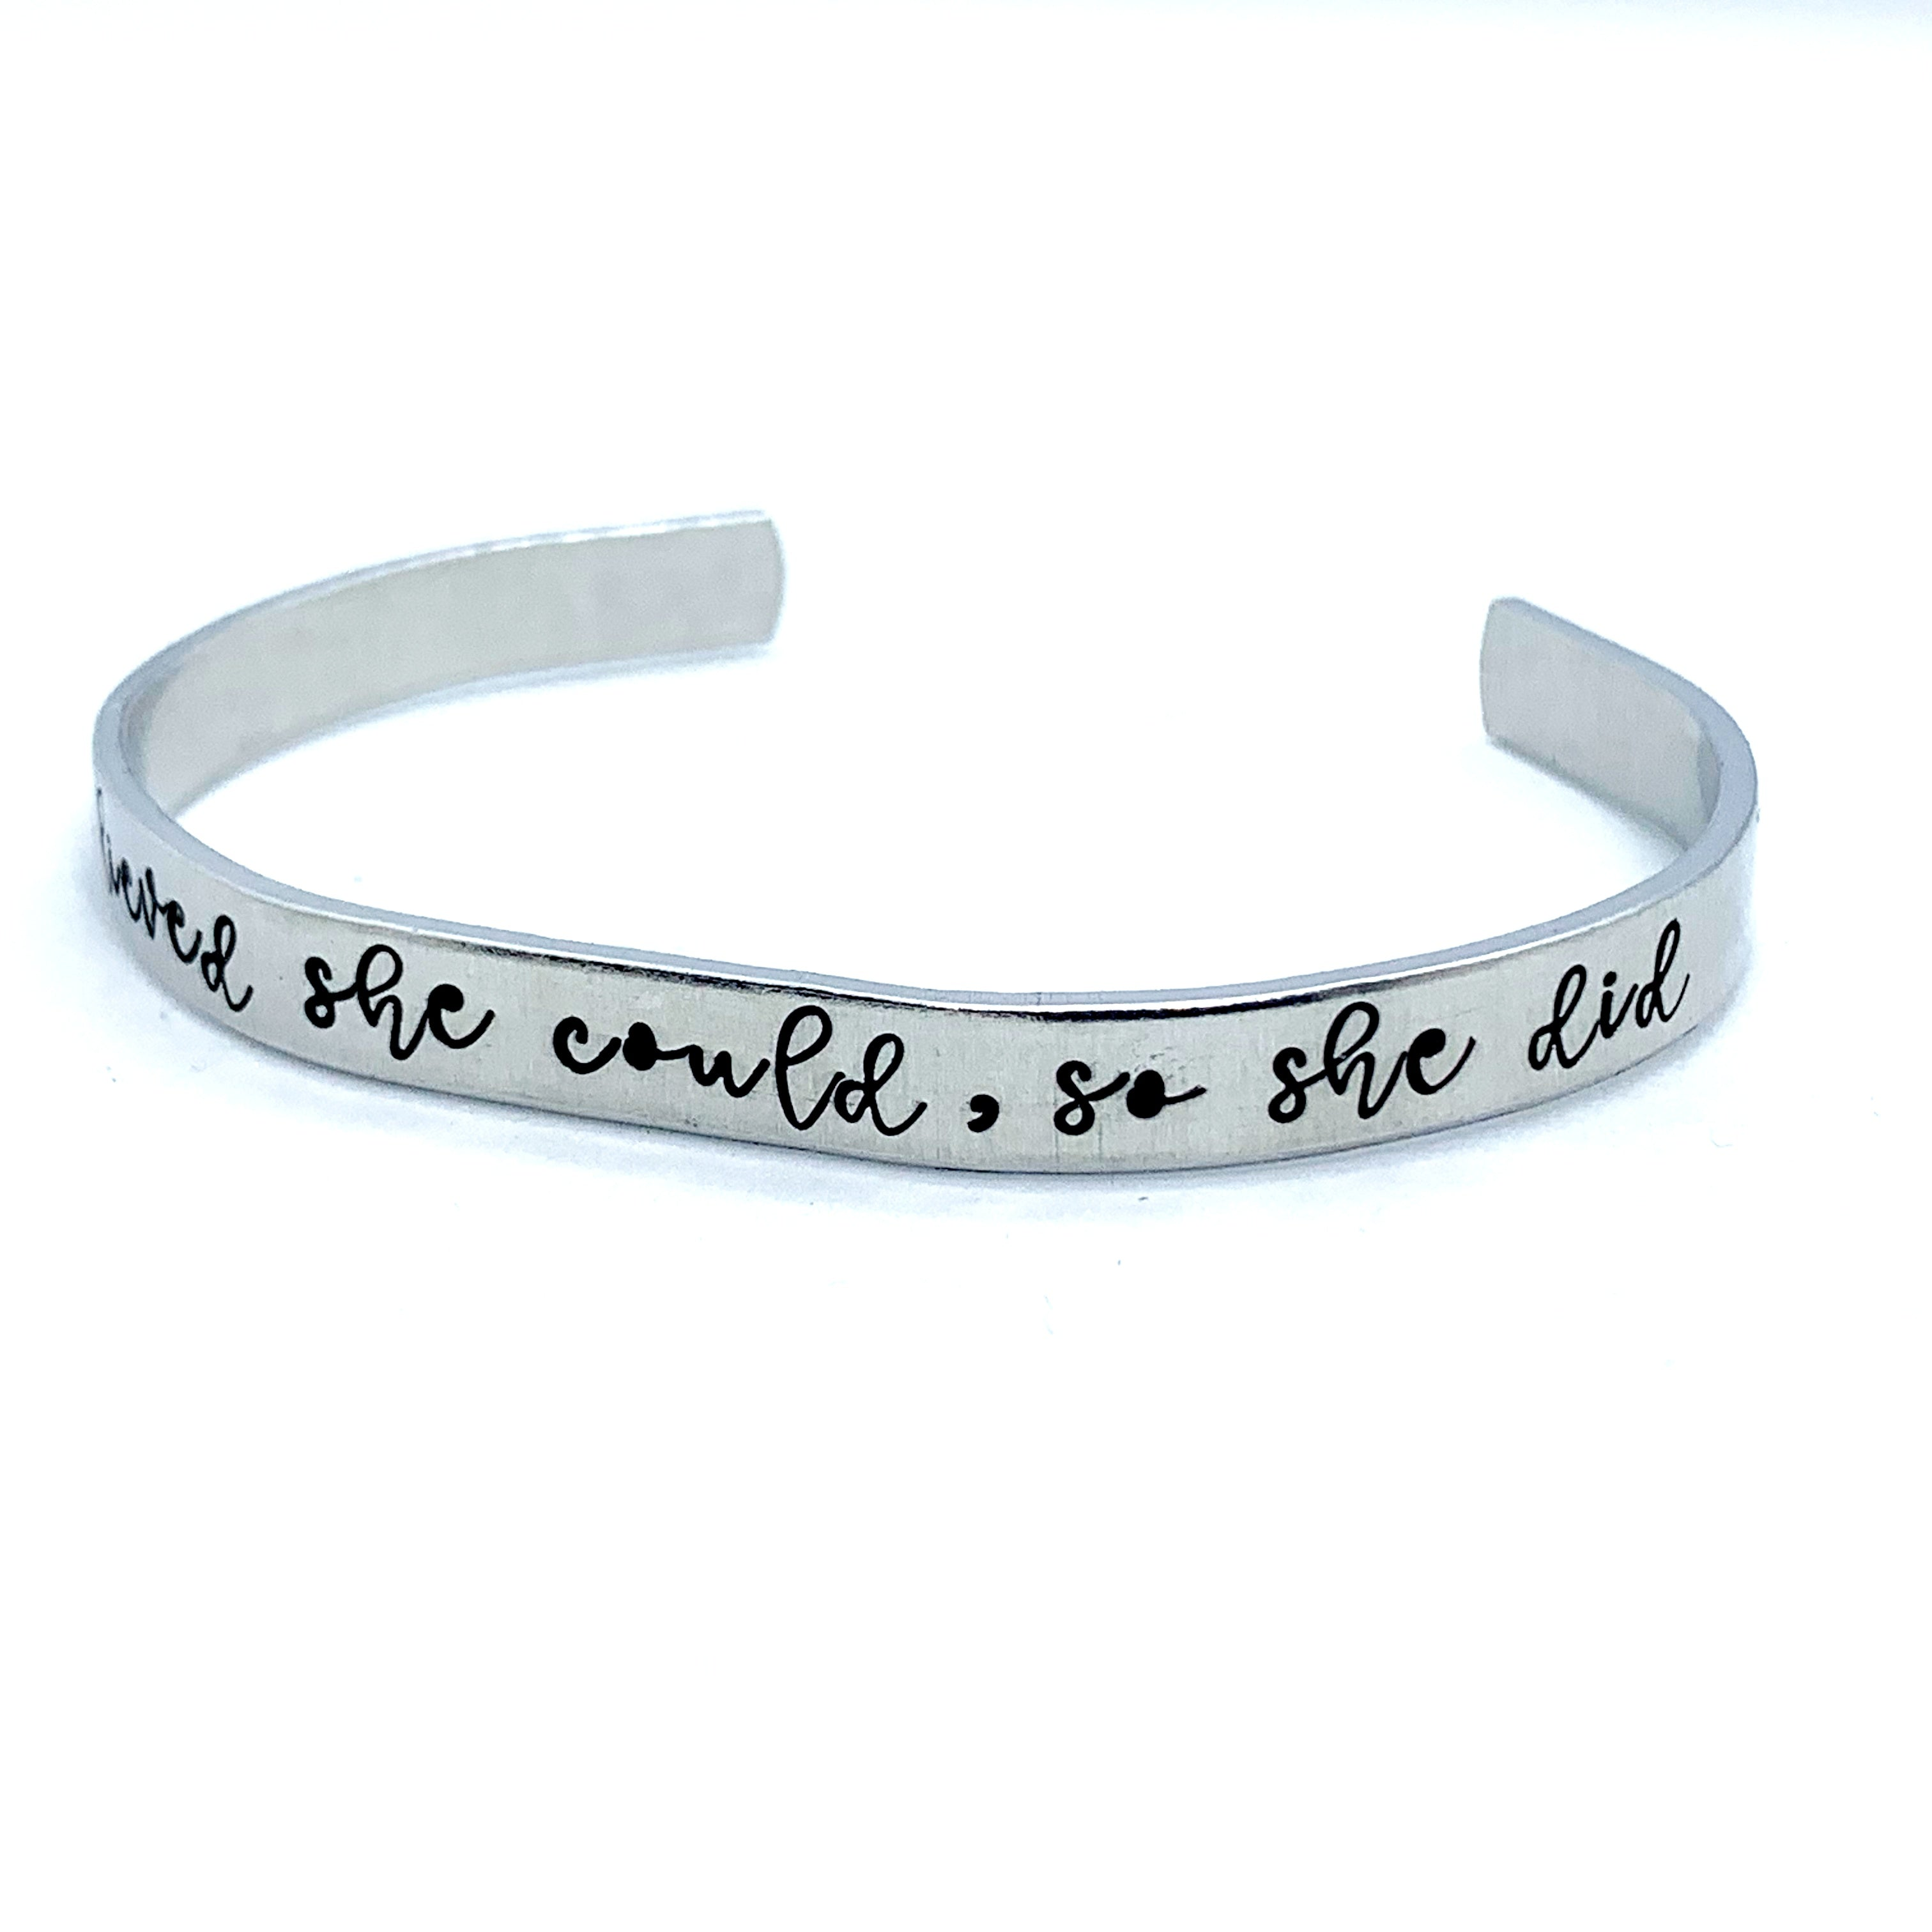 ¼ inch Aluminum Cuff - She Believed She Could, So She Did